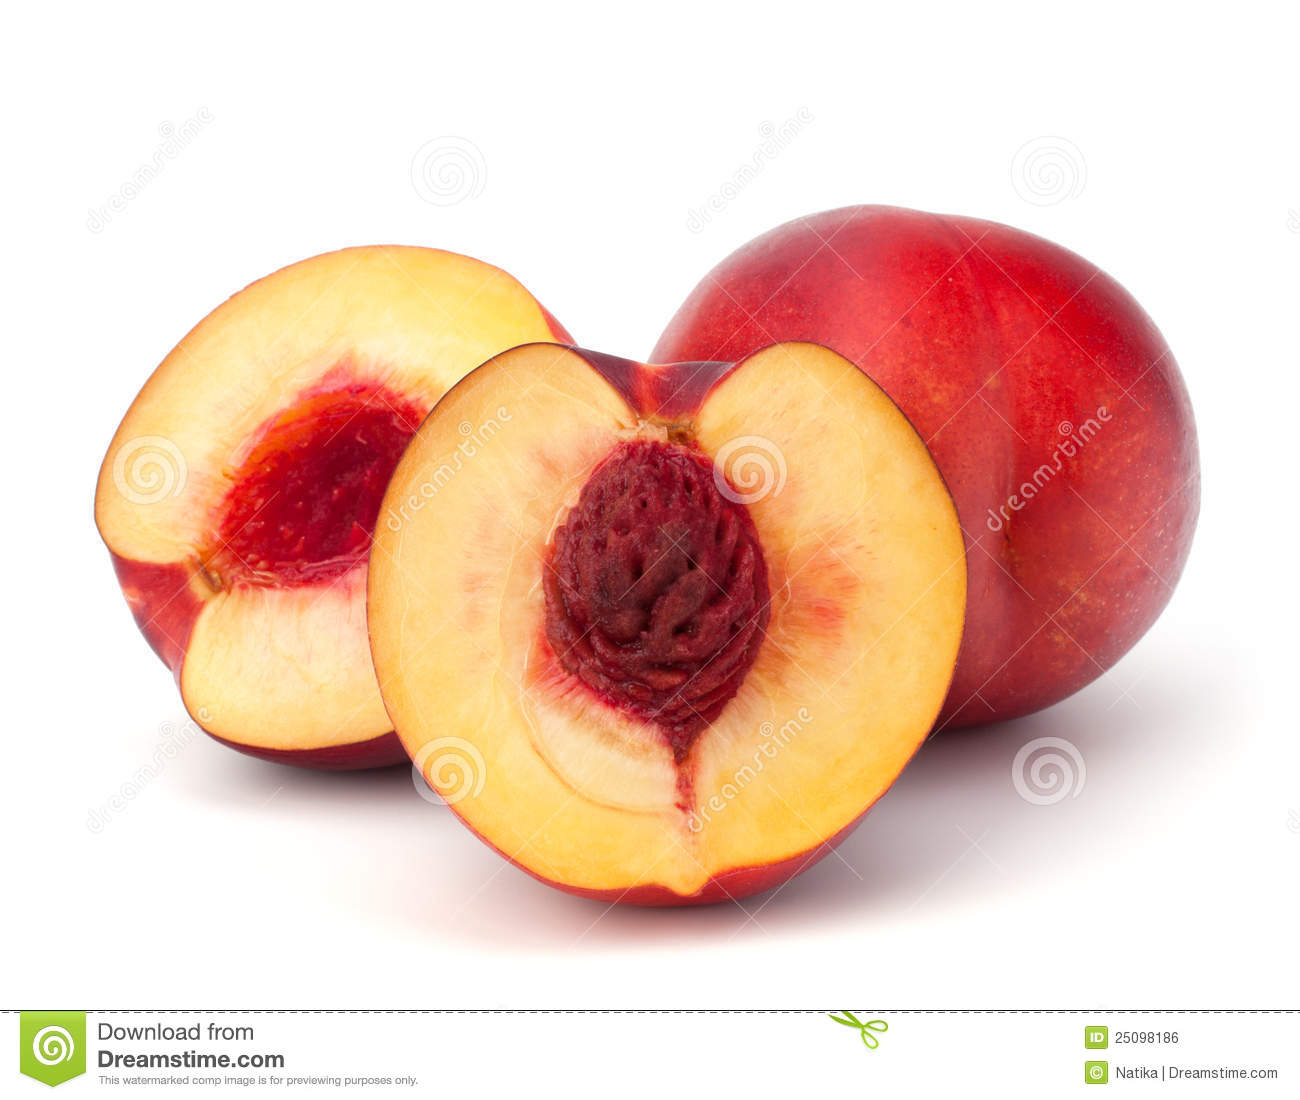 Nectarine Pictures Free